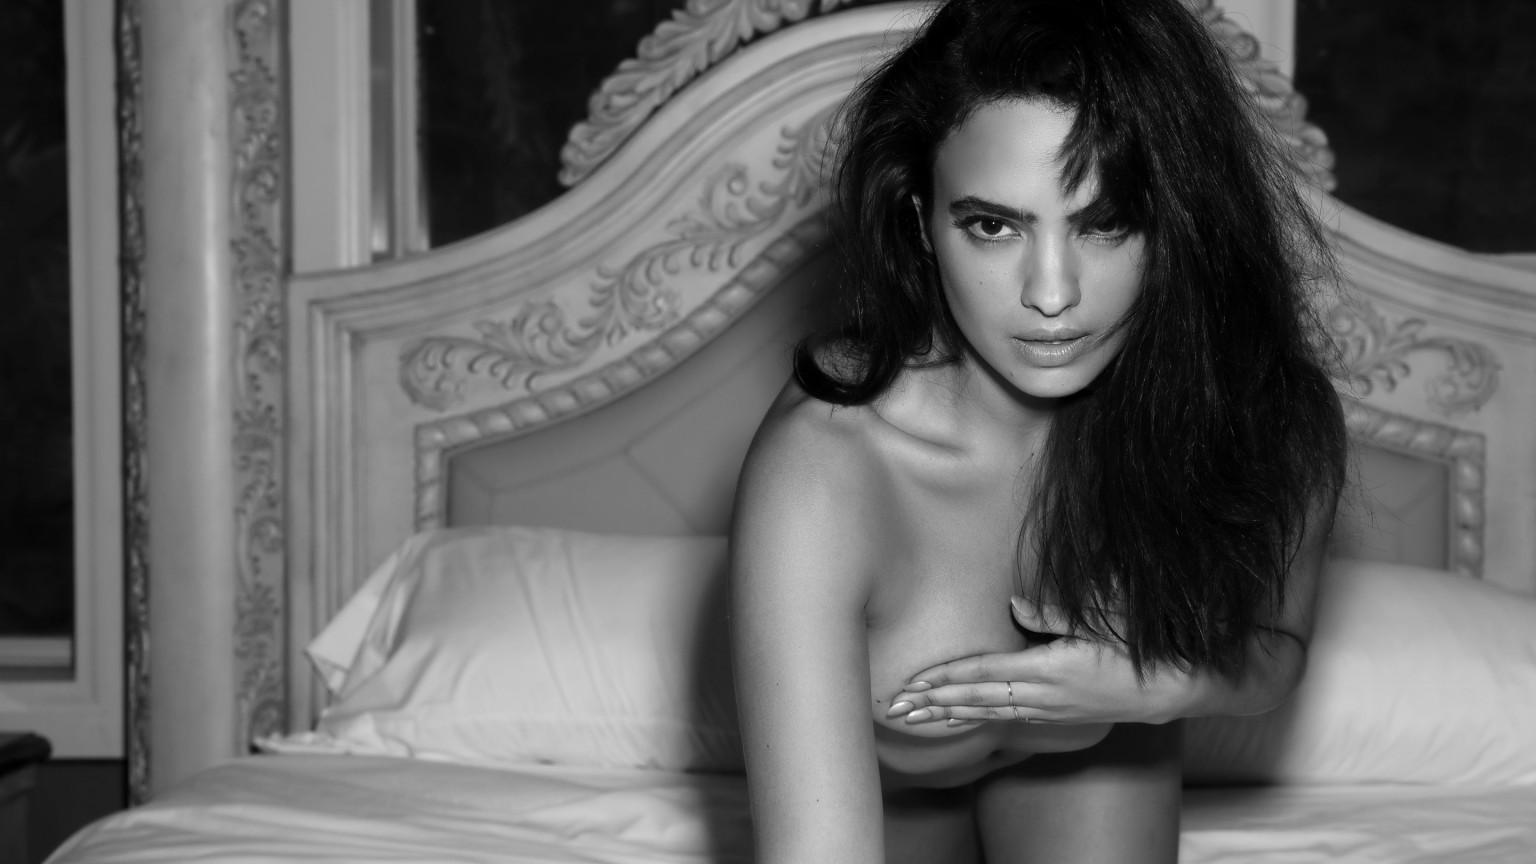 Introducing Our New Playmate of the Year: Nina Daniele